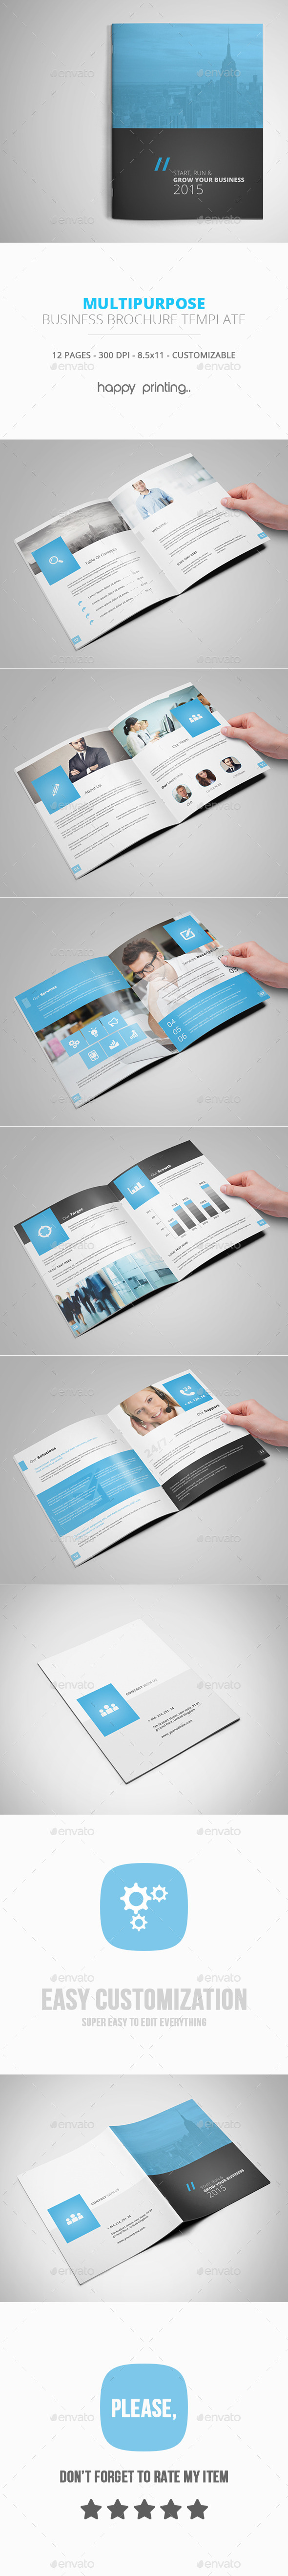 GraphicRiver Multipurpose Business Brochure Template 10262032